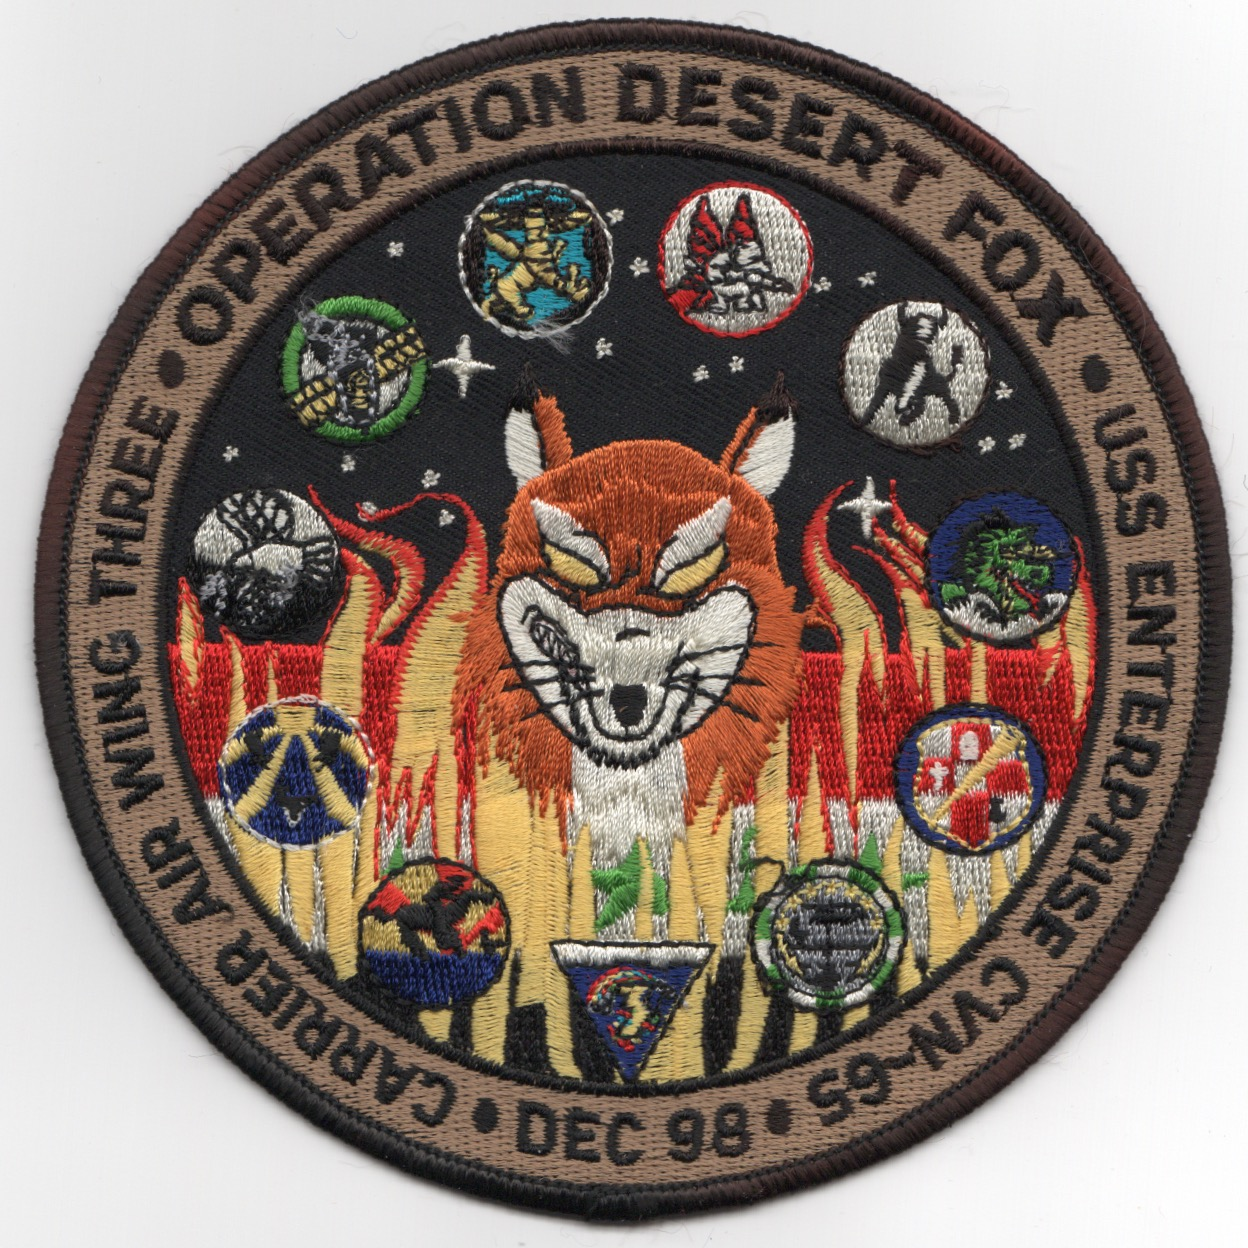 227) CVN-65 Operation DESERT FOX (Black)